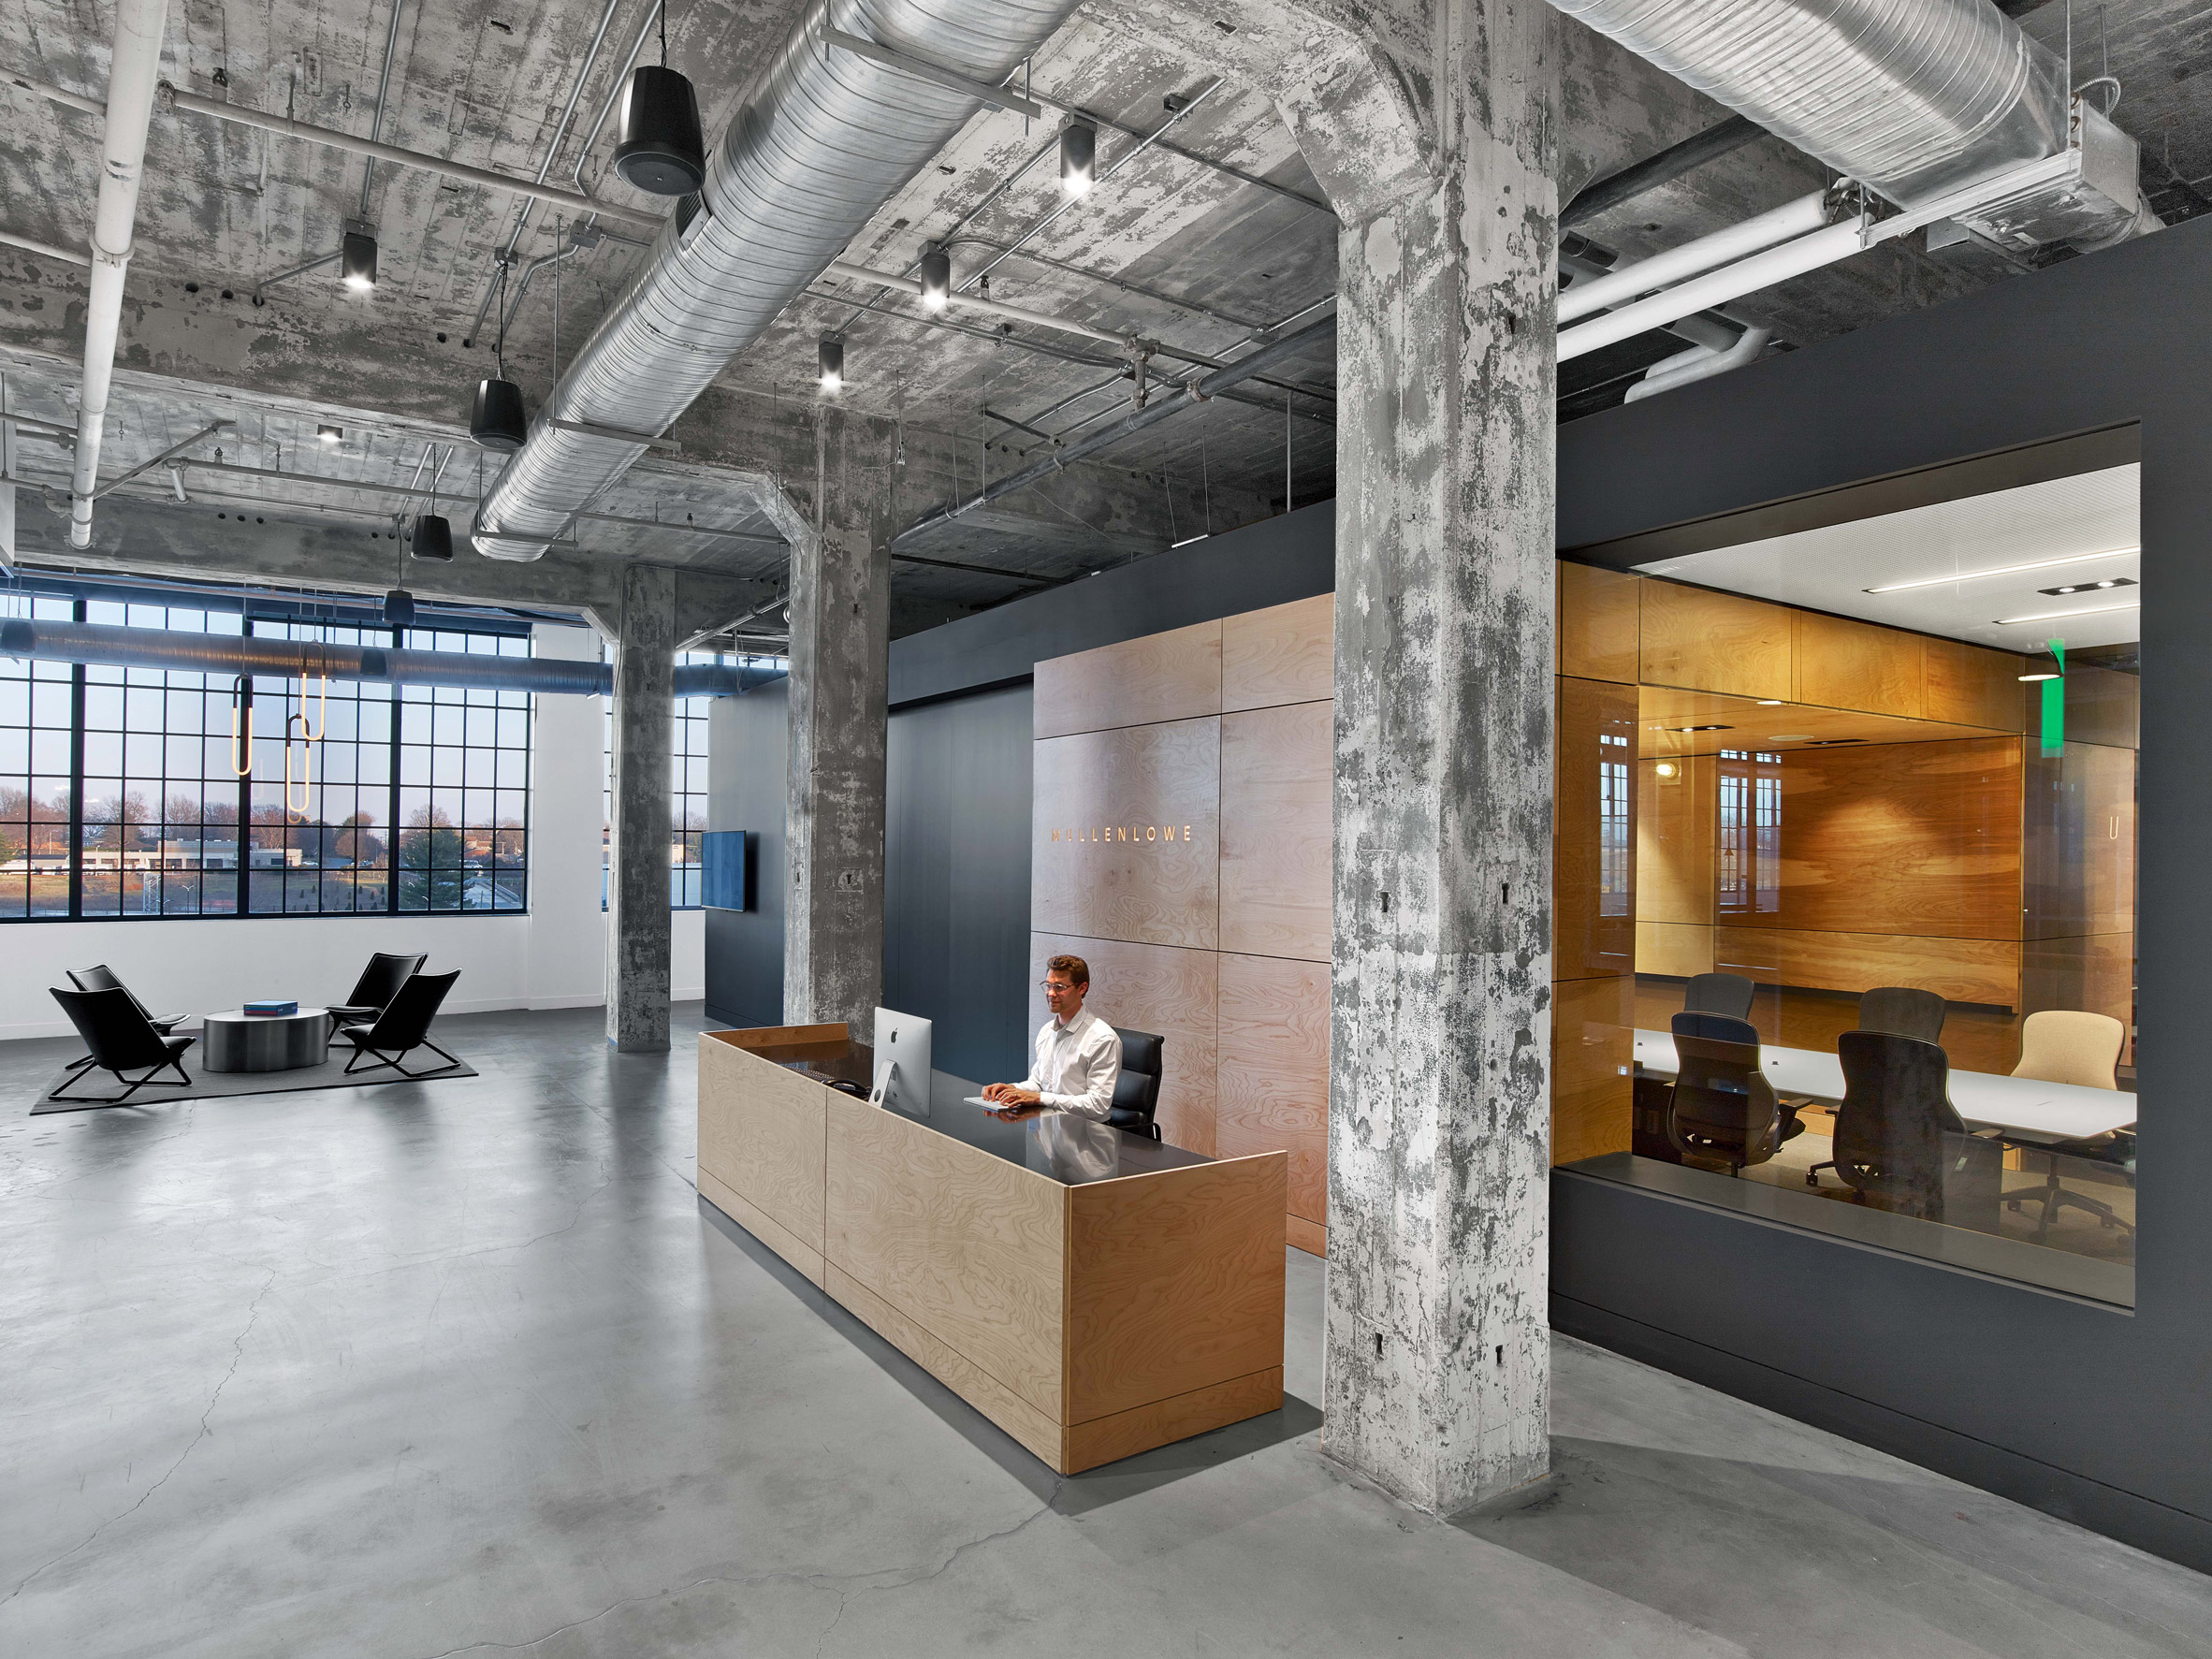 mullen-lowe-offices-tpg-architecture-interiors-north-carolina-usa_dezeen_2364_col_0.jpg